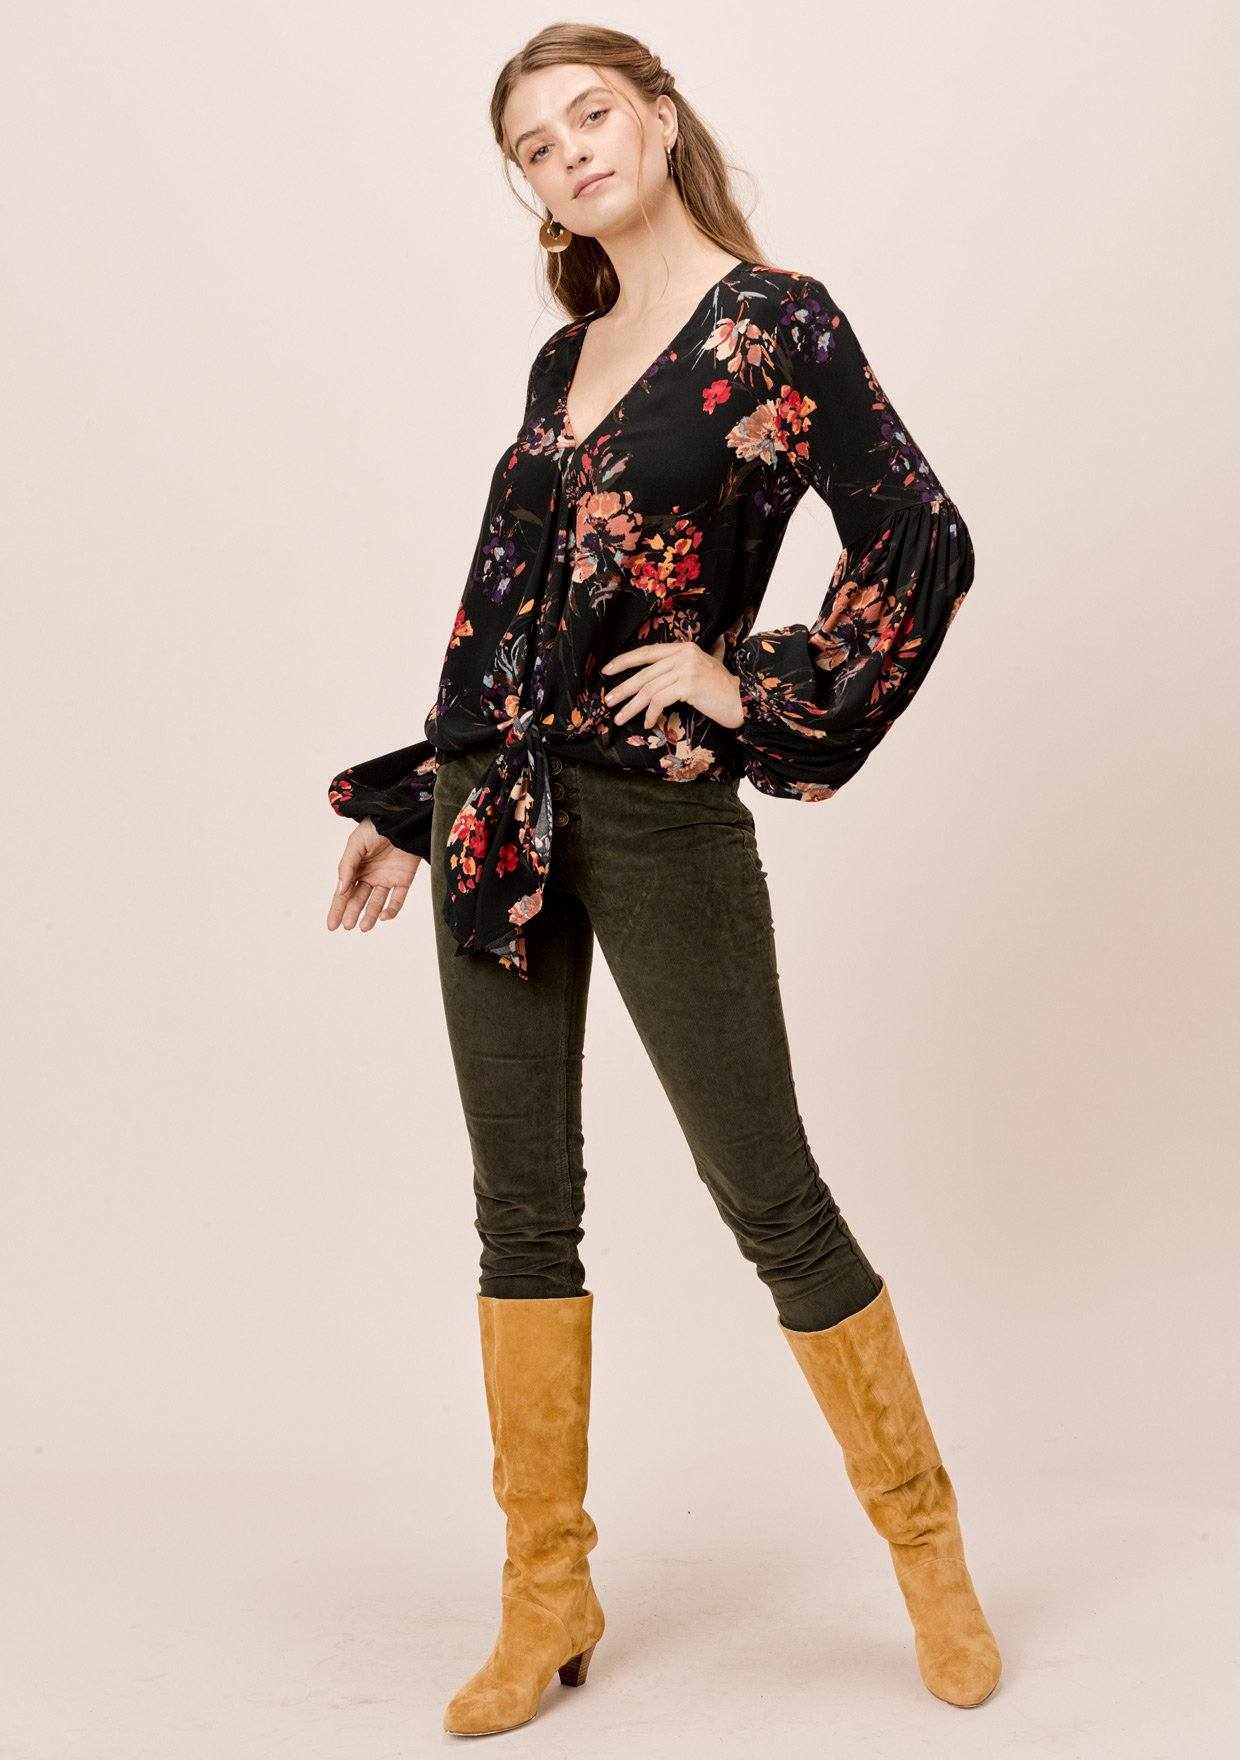 [Color: Black/Clay] Lovestitch Floral Tie Front Top with Volume Sleeves